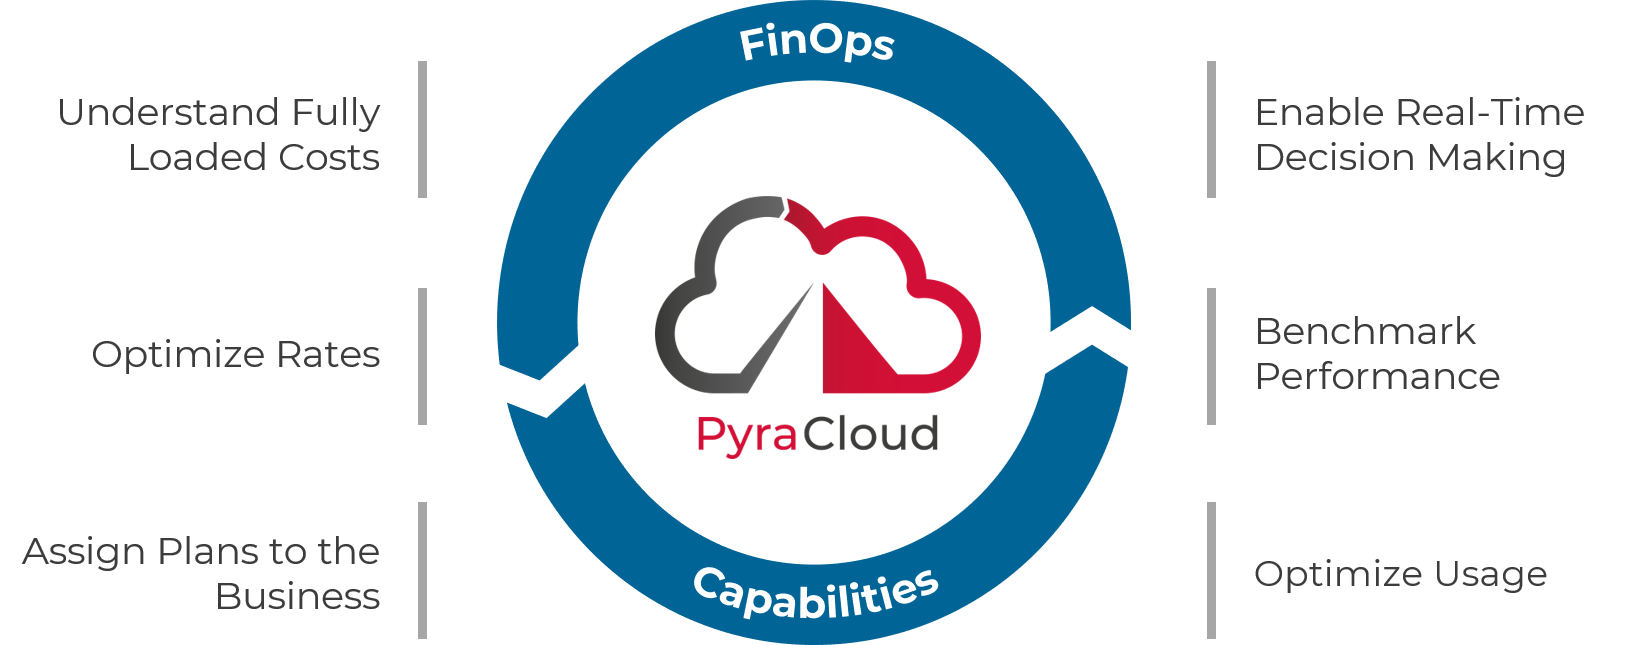 PyraCloud Powers FinOps Overview